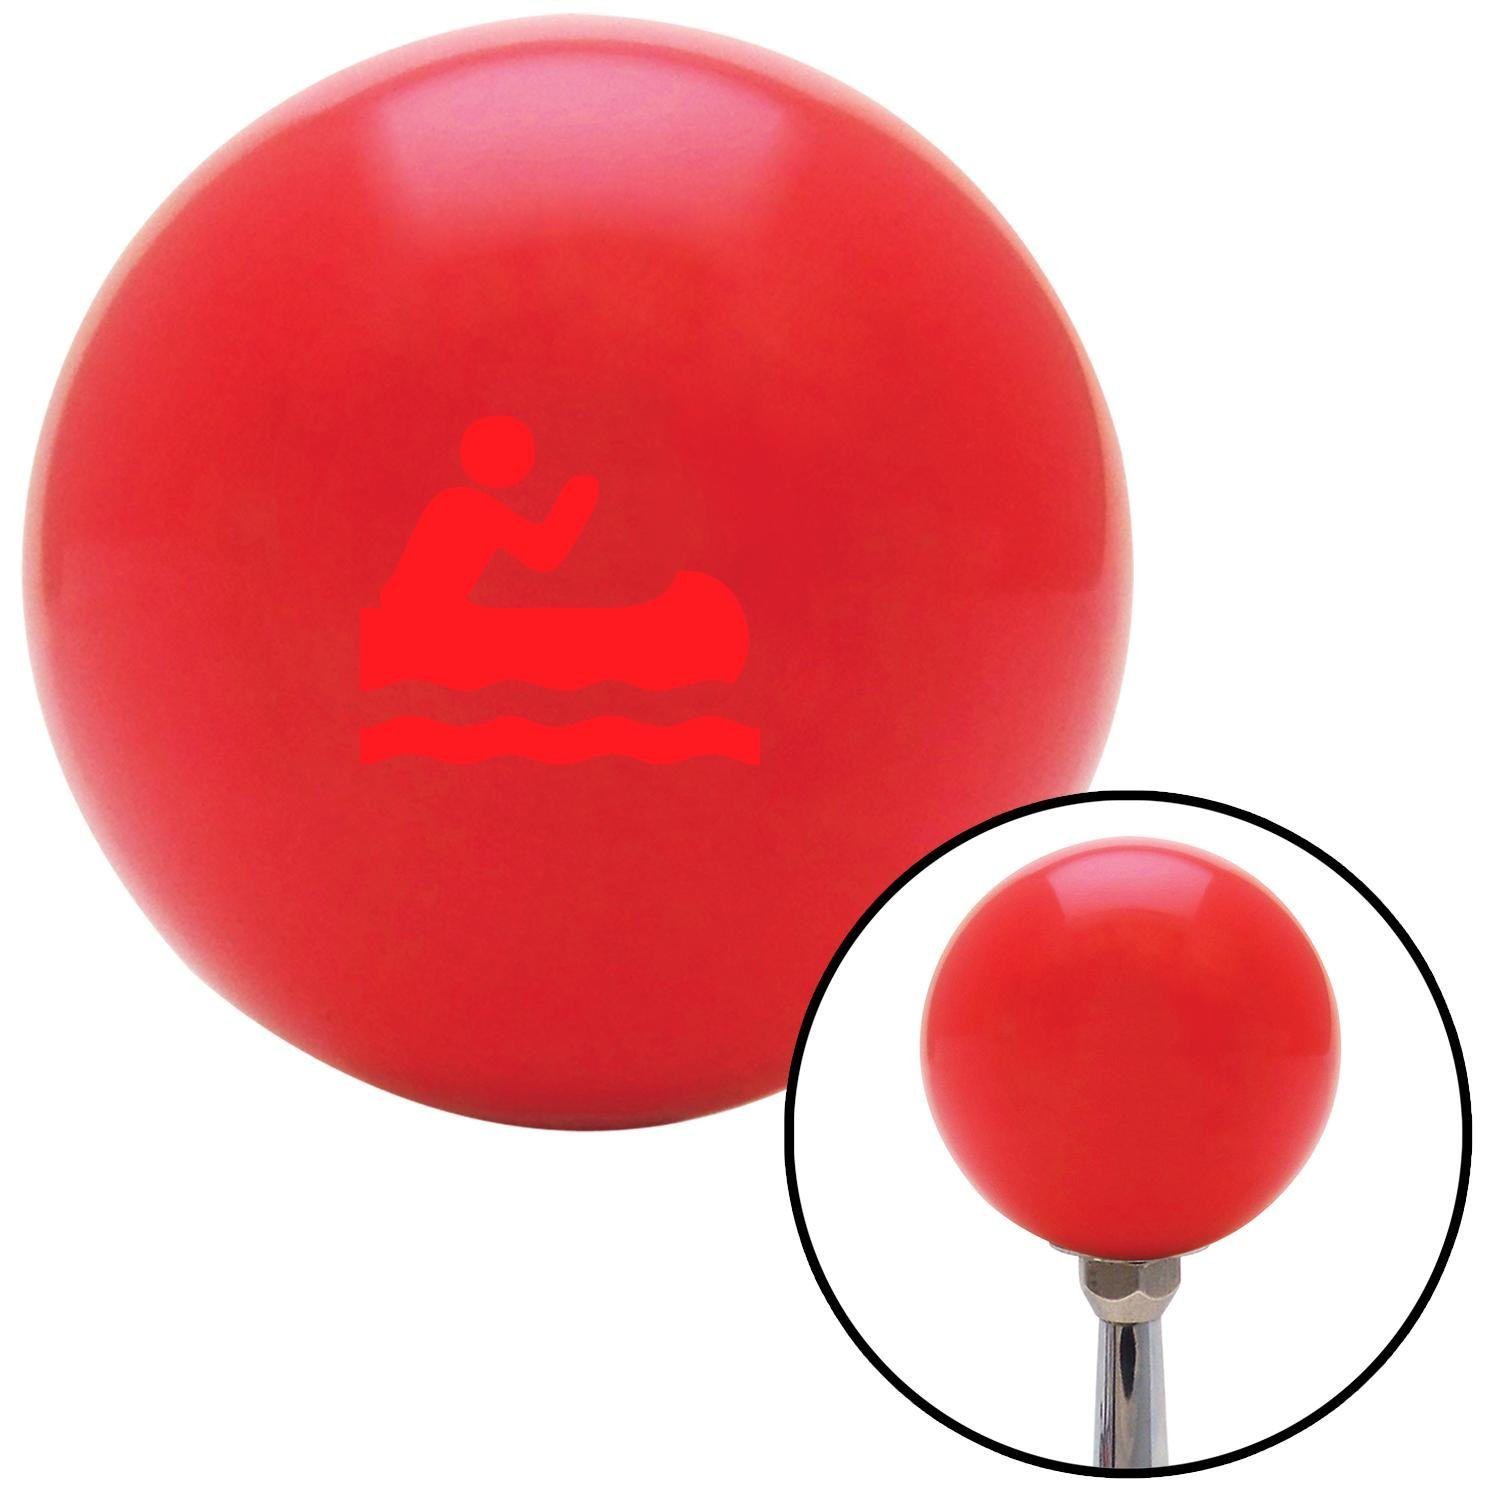 American Shifter 95628 Red Shift Knob with M16 x 1.5 Insert Red Guy Paddling Canoe